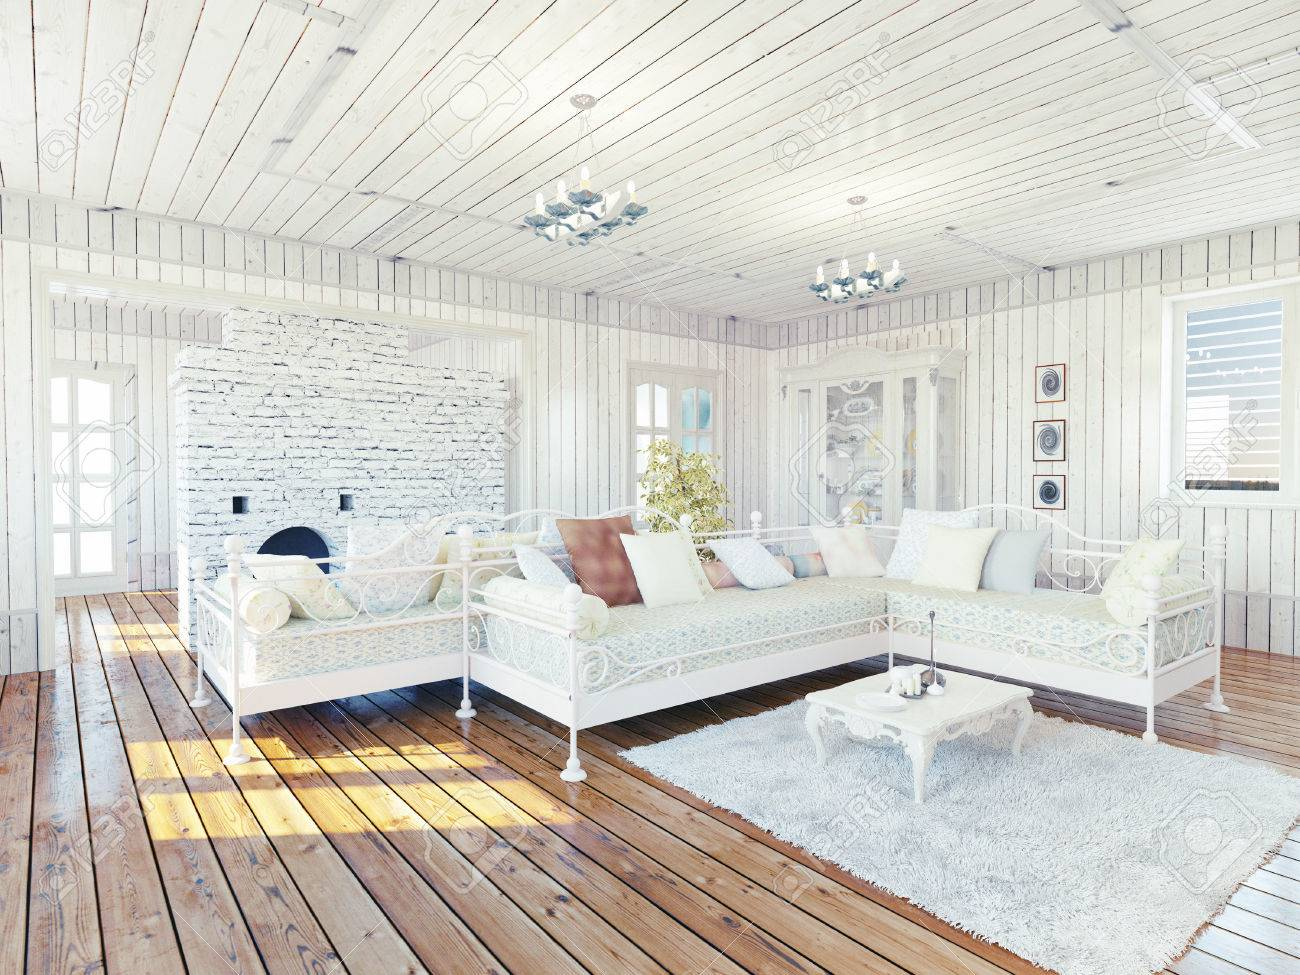 Provence Rural House Interior Design Concept Stock Photo